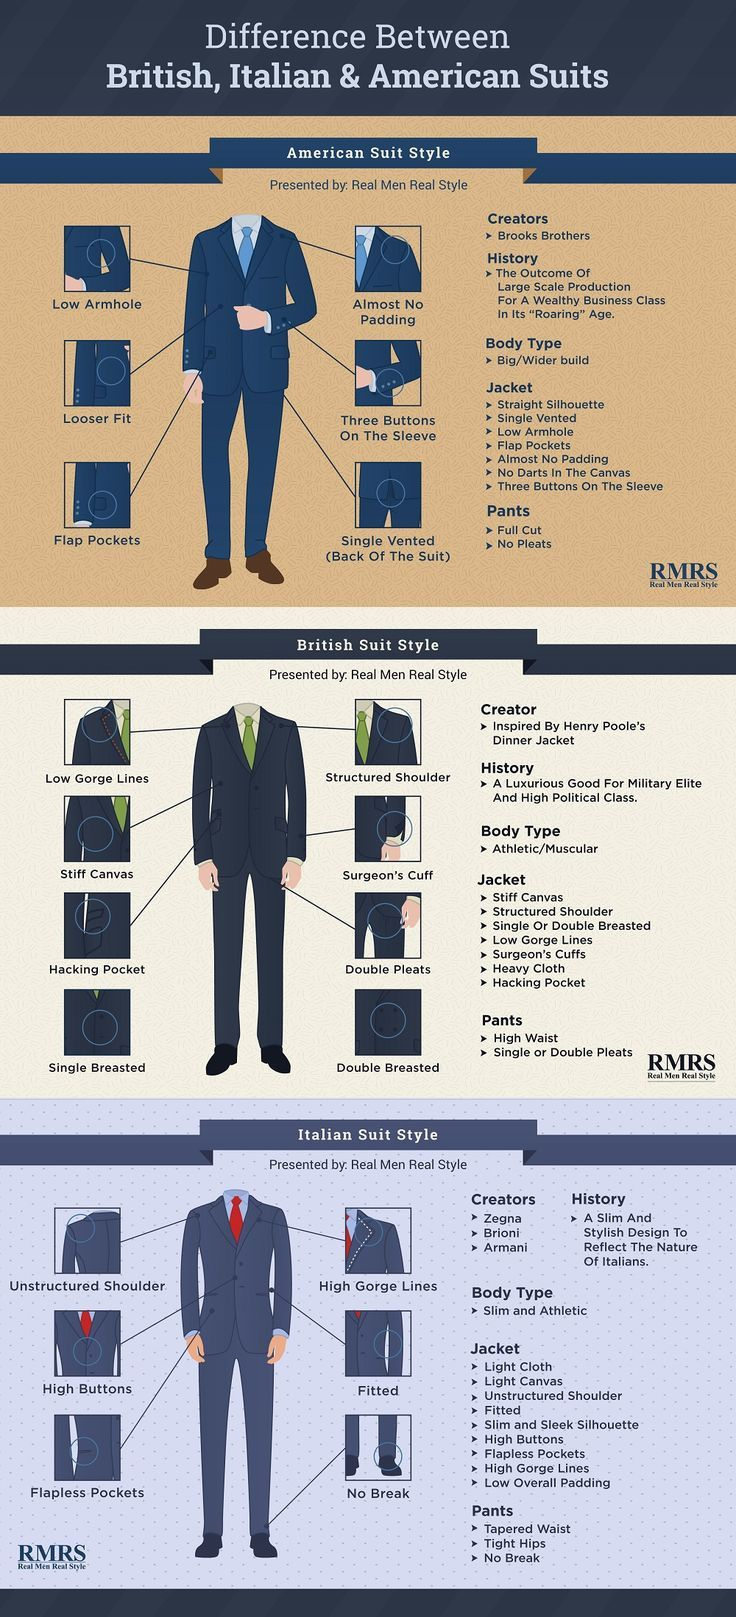 Fashion Infographic Difference Between British Italian American Suit Styles Infographic Infographicnow Com Your Number One Source For Daily Infographics Visual Creativity